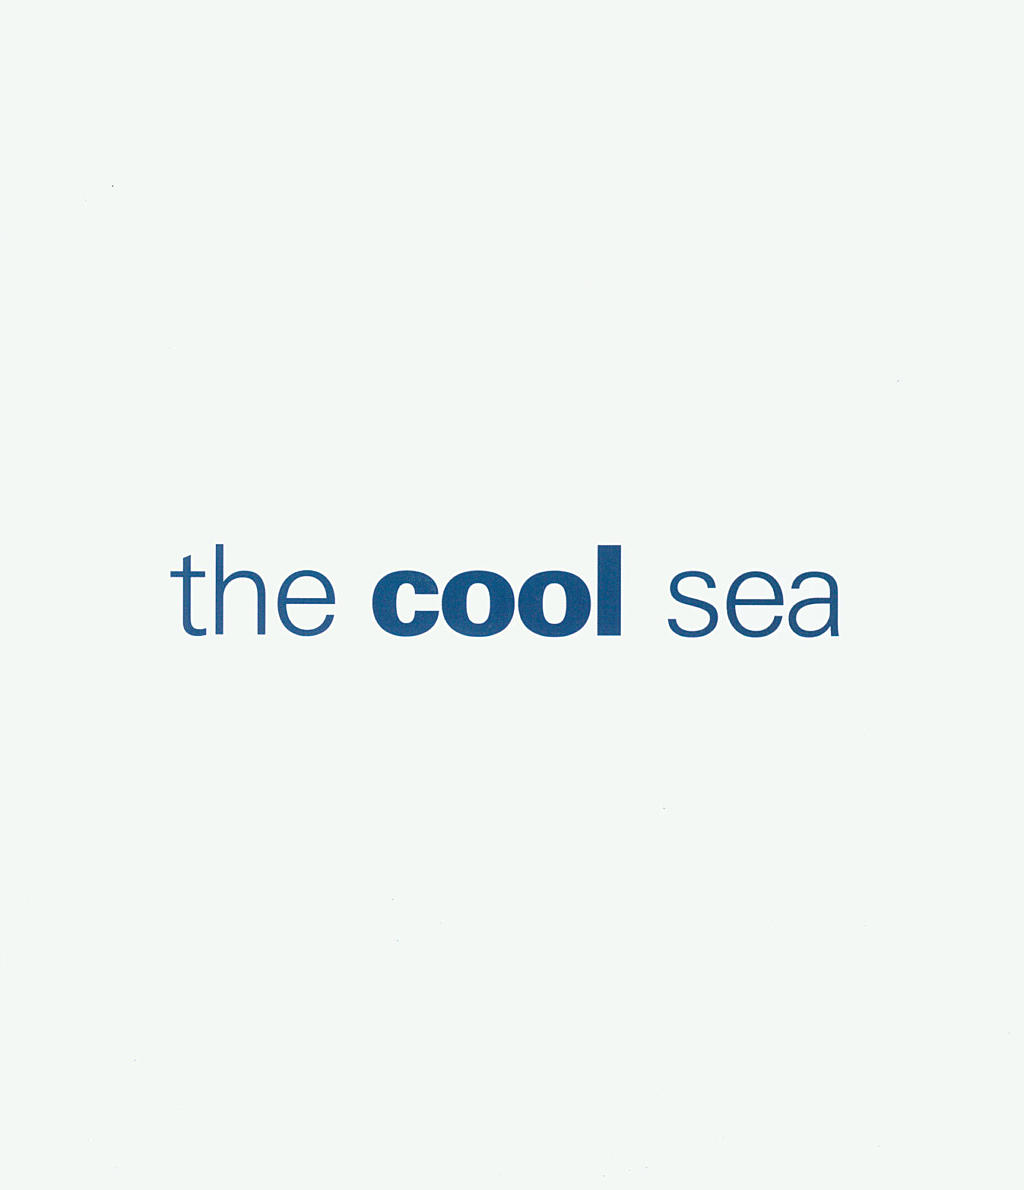 The cool sea